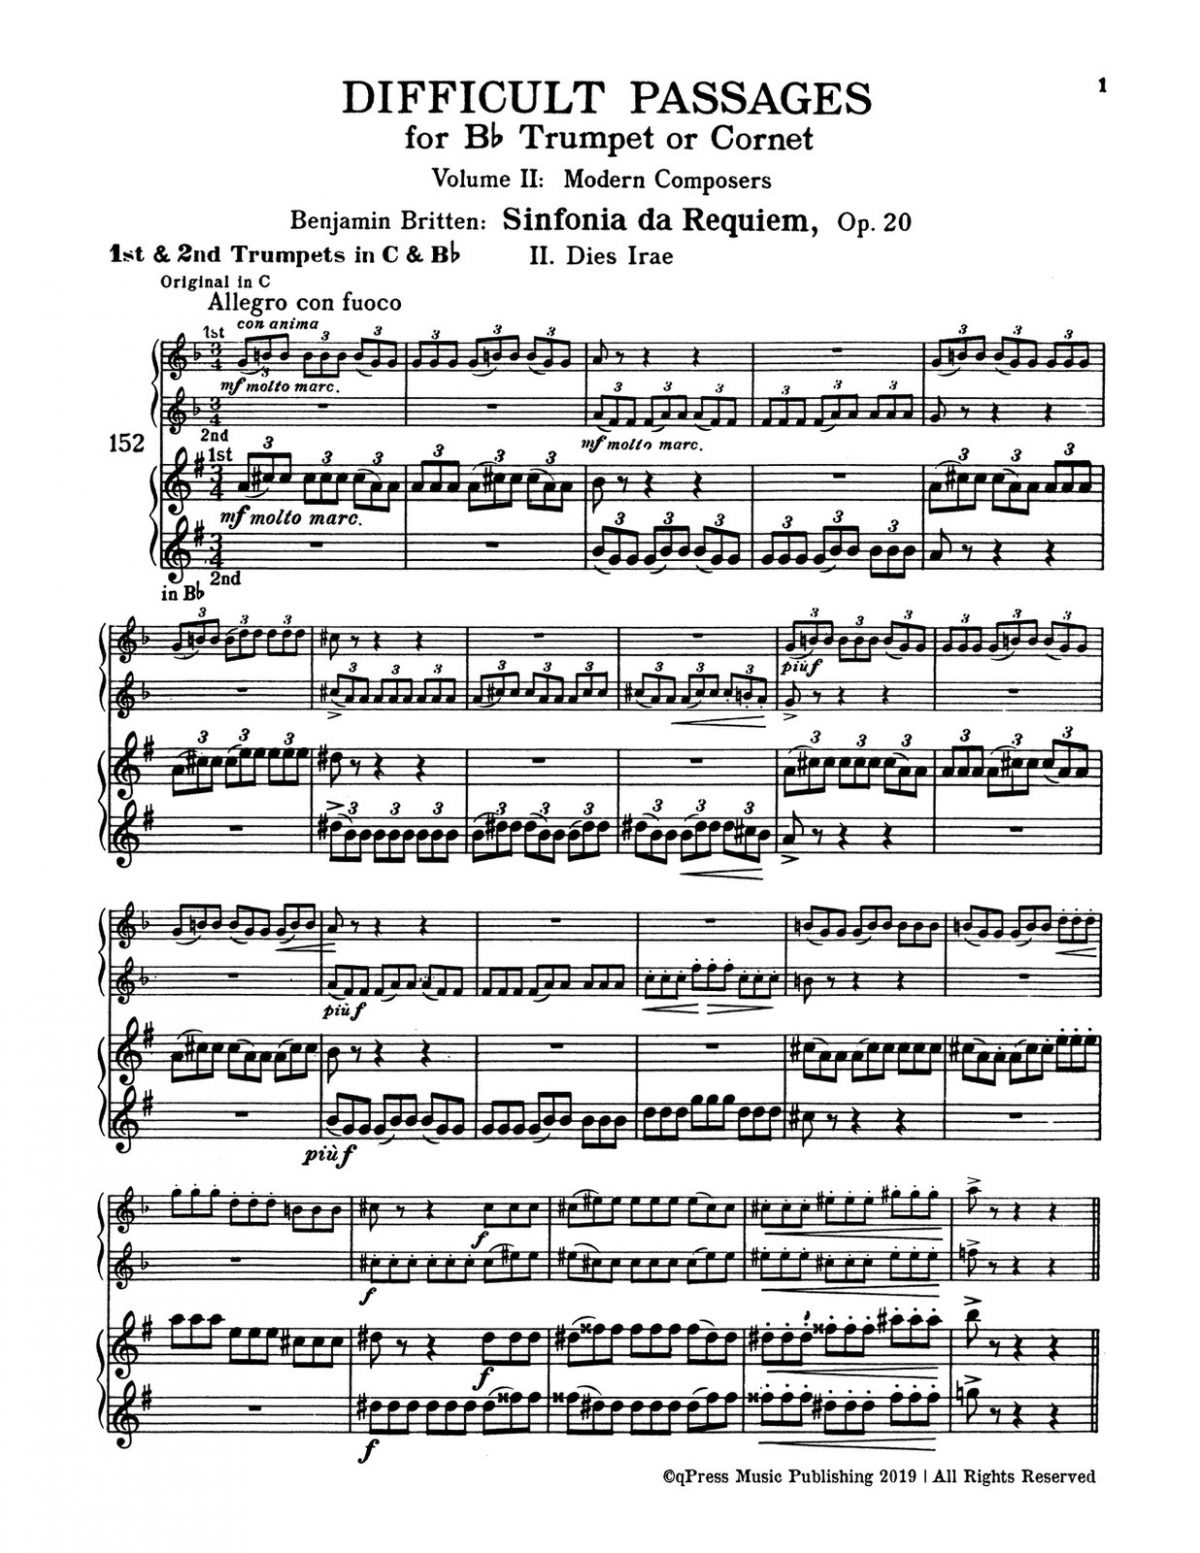 Hall, Difficult Passages for Trumpet or Cornet in Bb Vol 2-p05